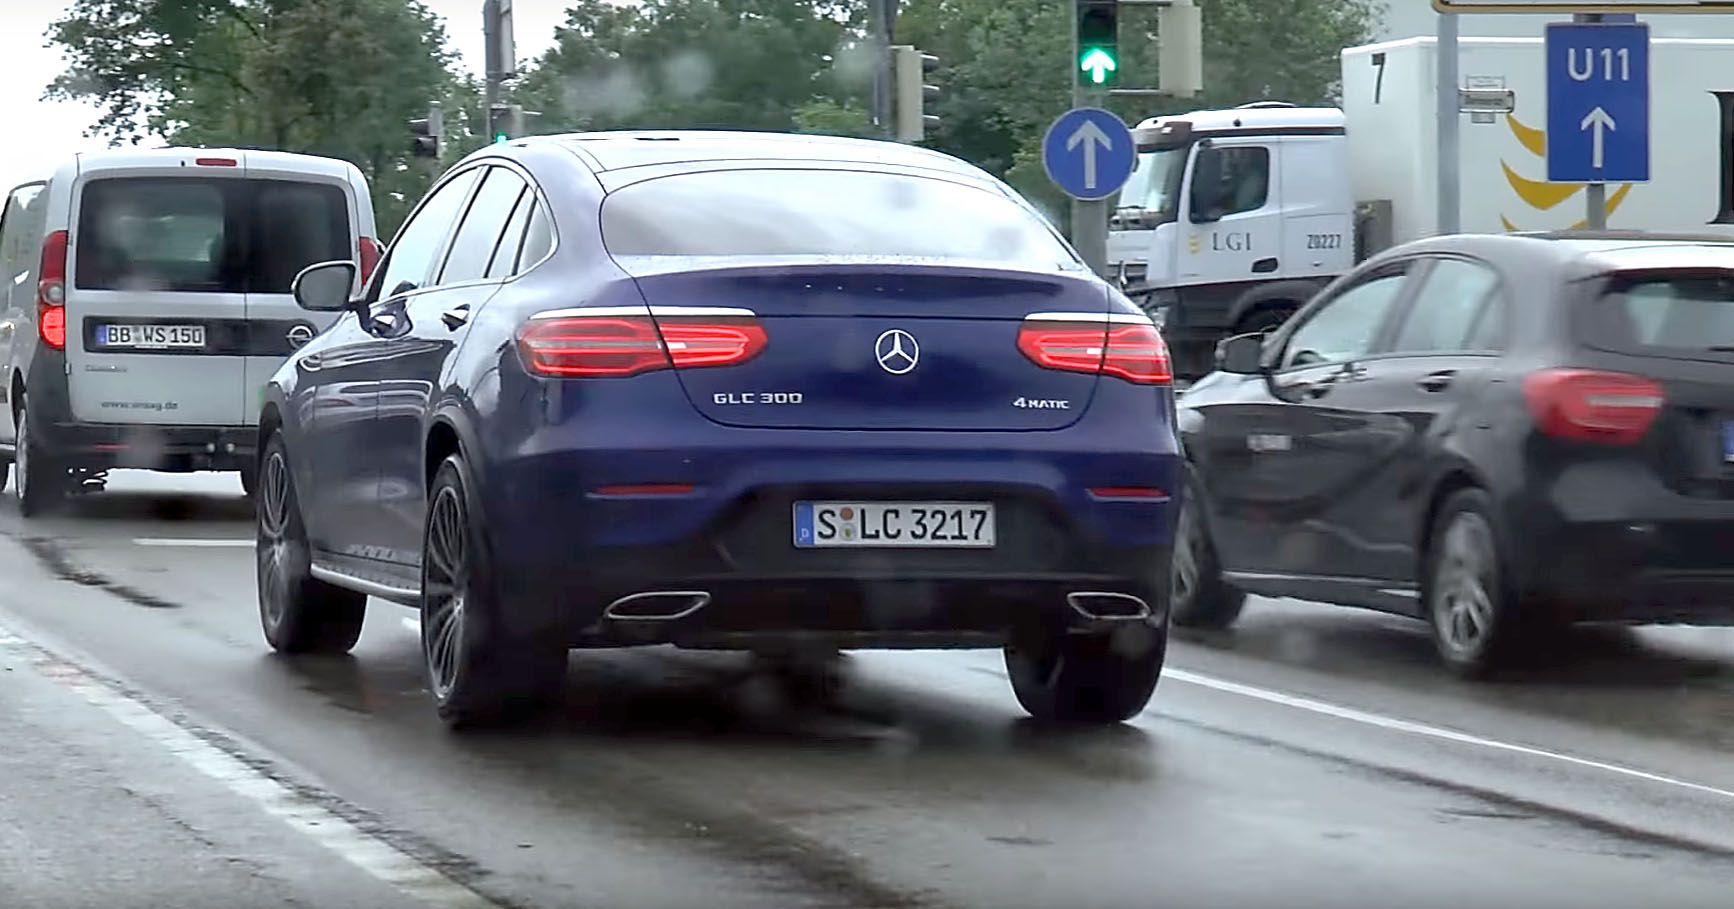 https://s1.cdn.autoevolution.com/images/news/first-street-sighting-of-the-2017-mercedes-benz-glc-coupe-108552_1.jpg